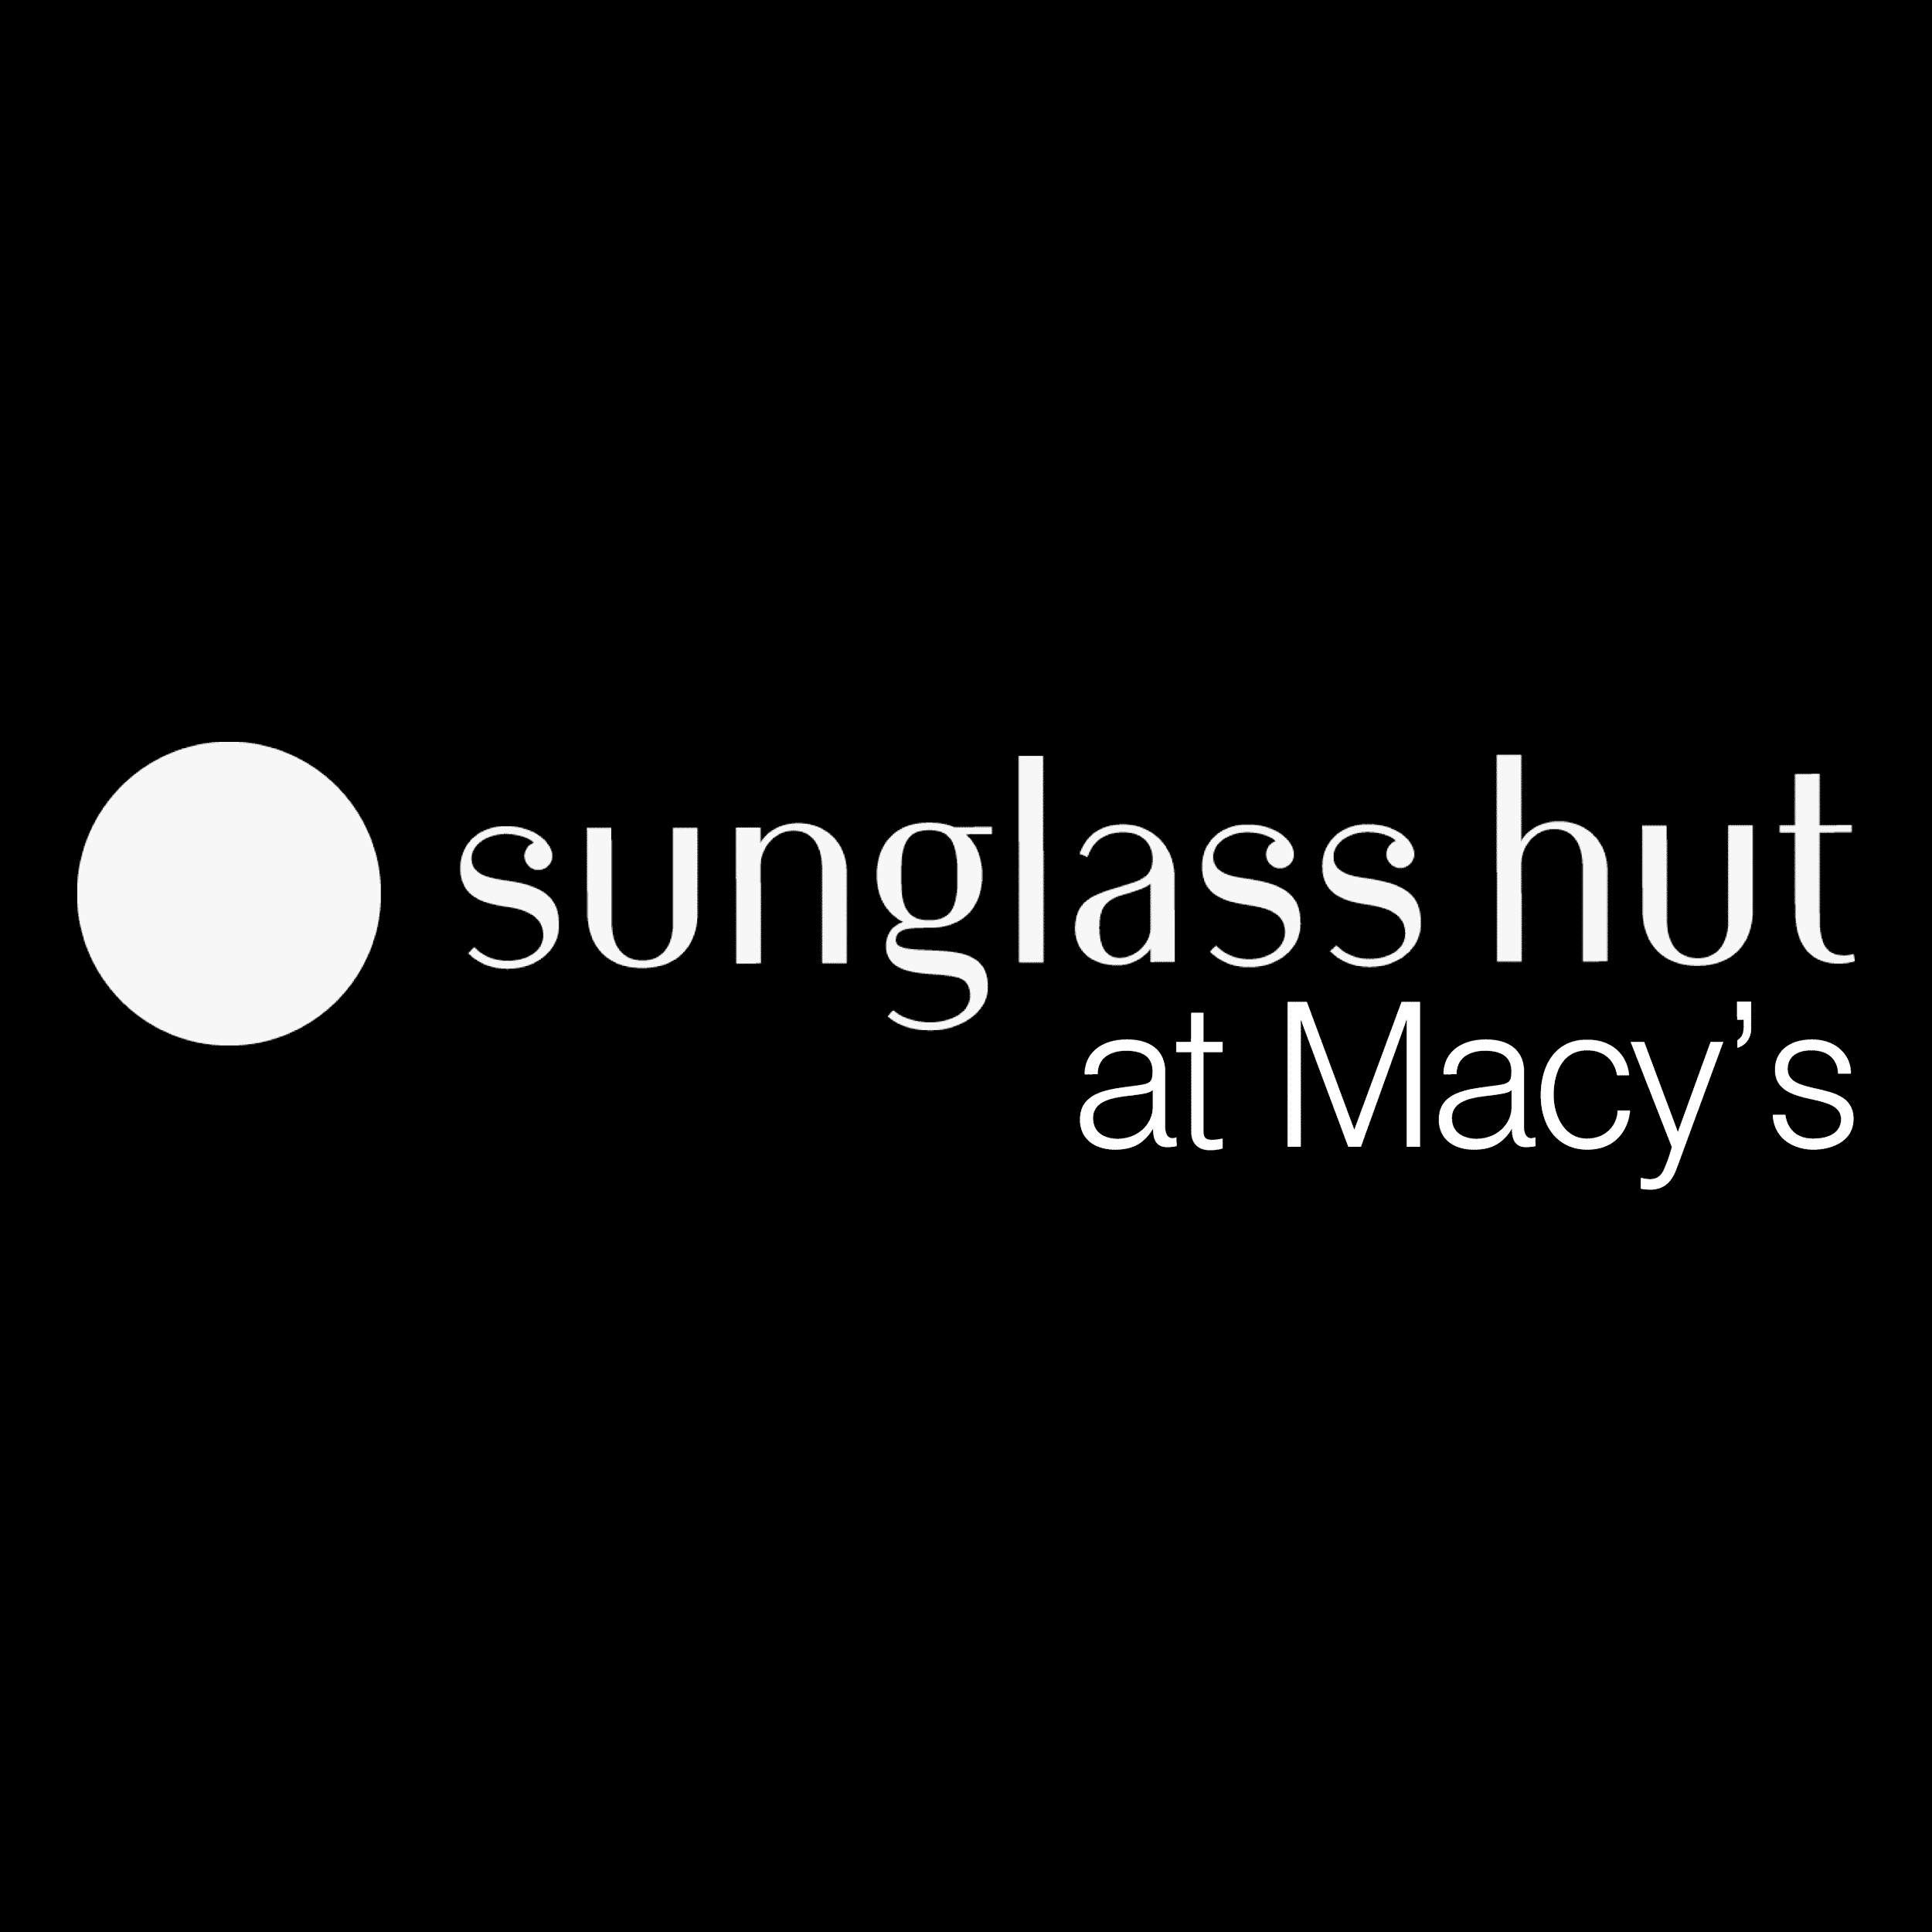 Sunglass Hut at Macy's image 0